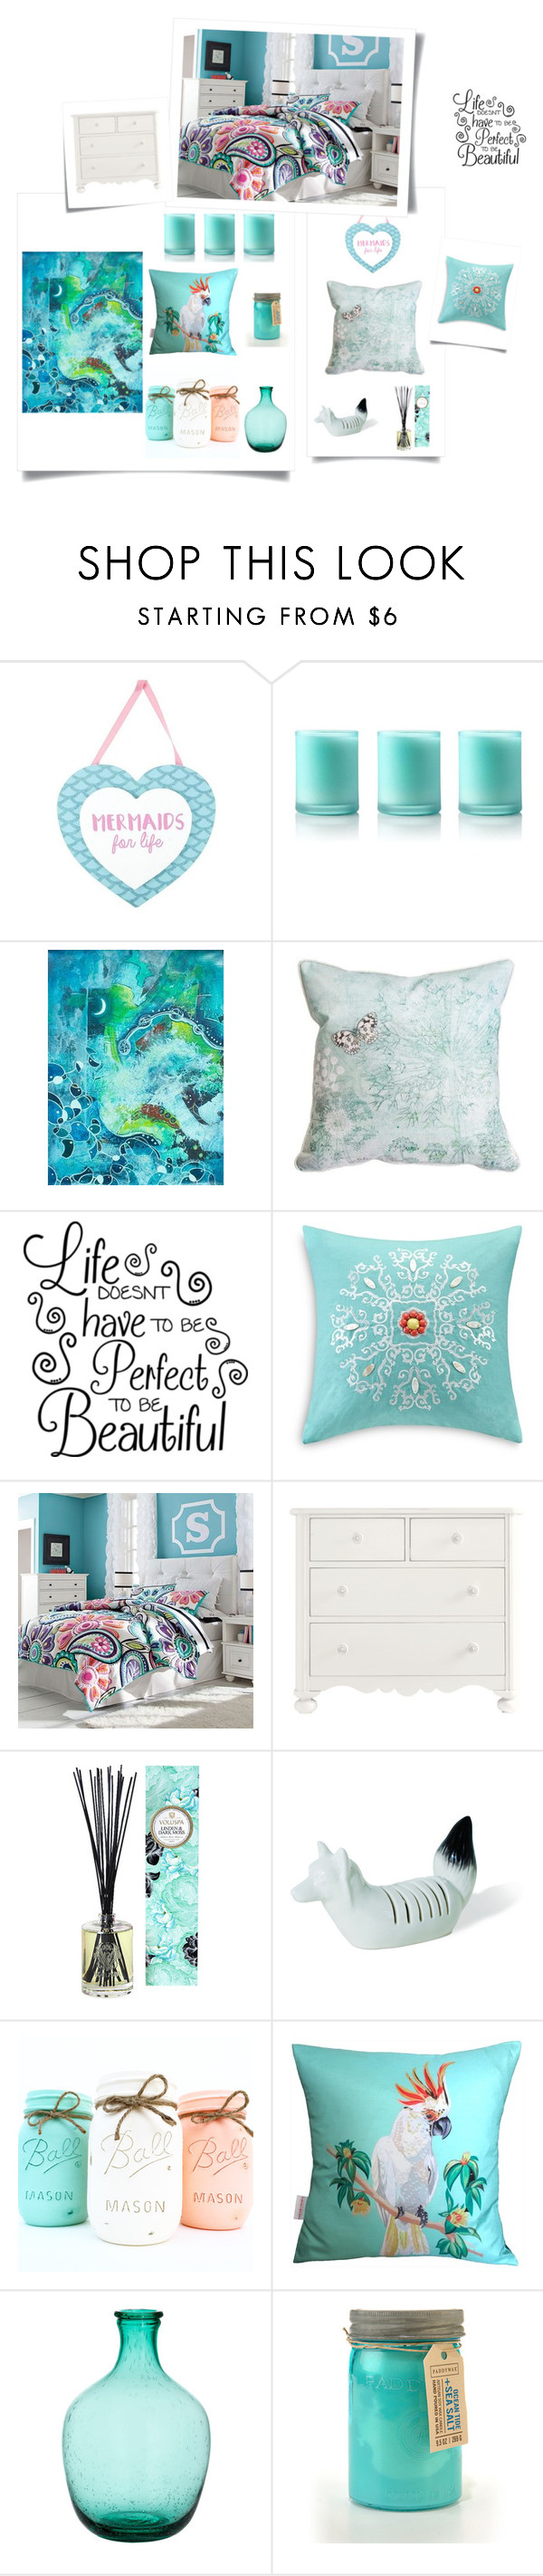 """Pet1"" by p-calkova on Polyvore featuring interior, interiors, interior design, home, home decor, interior decorating, Bliss, NOVICA, Echo and PBteen"